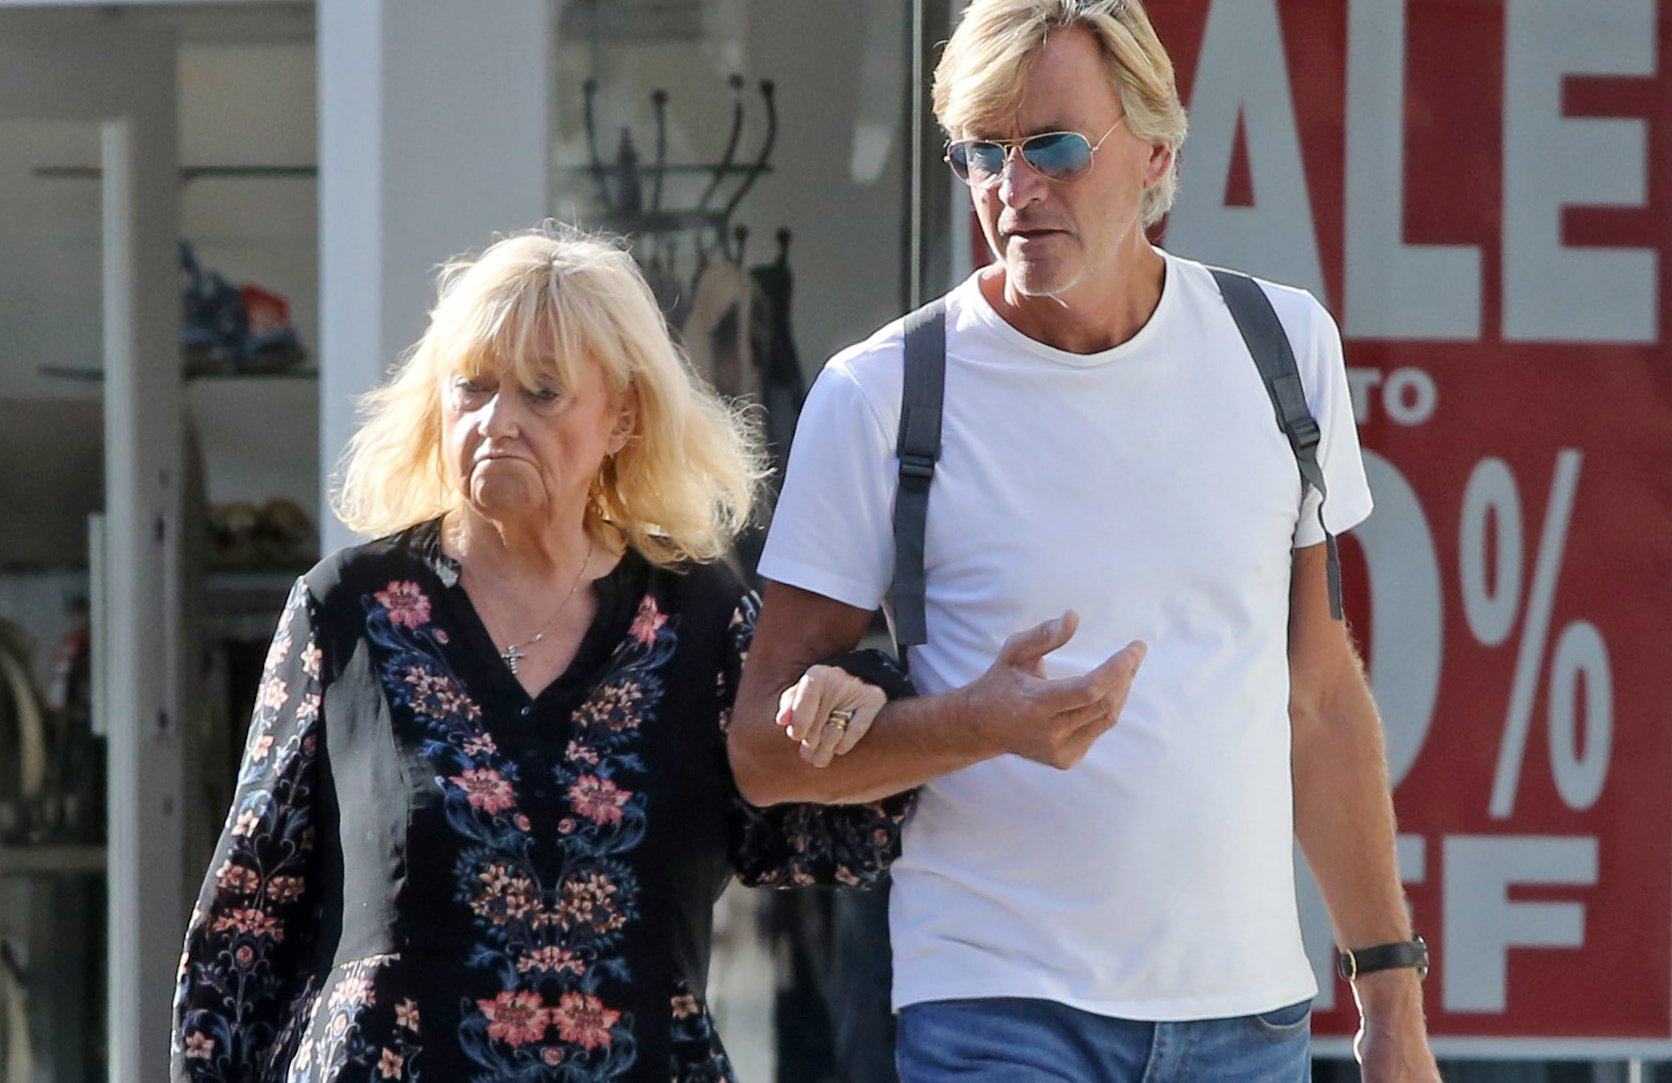 Judy Finnigan unveils healthy weight loss as she debuts fitter figure during stroll with Richard Madeley